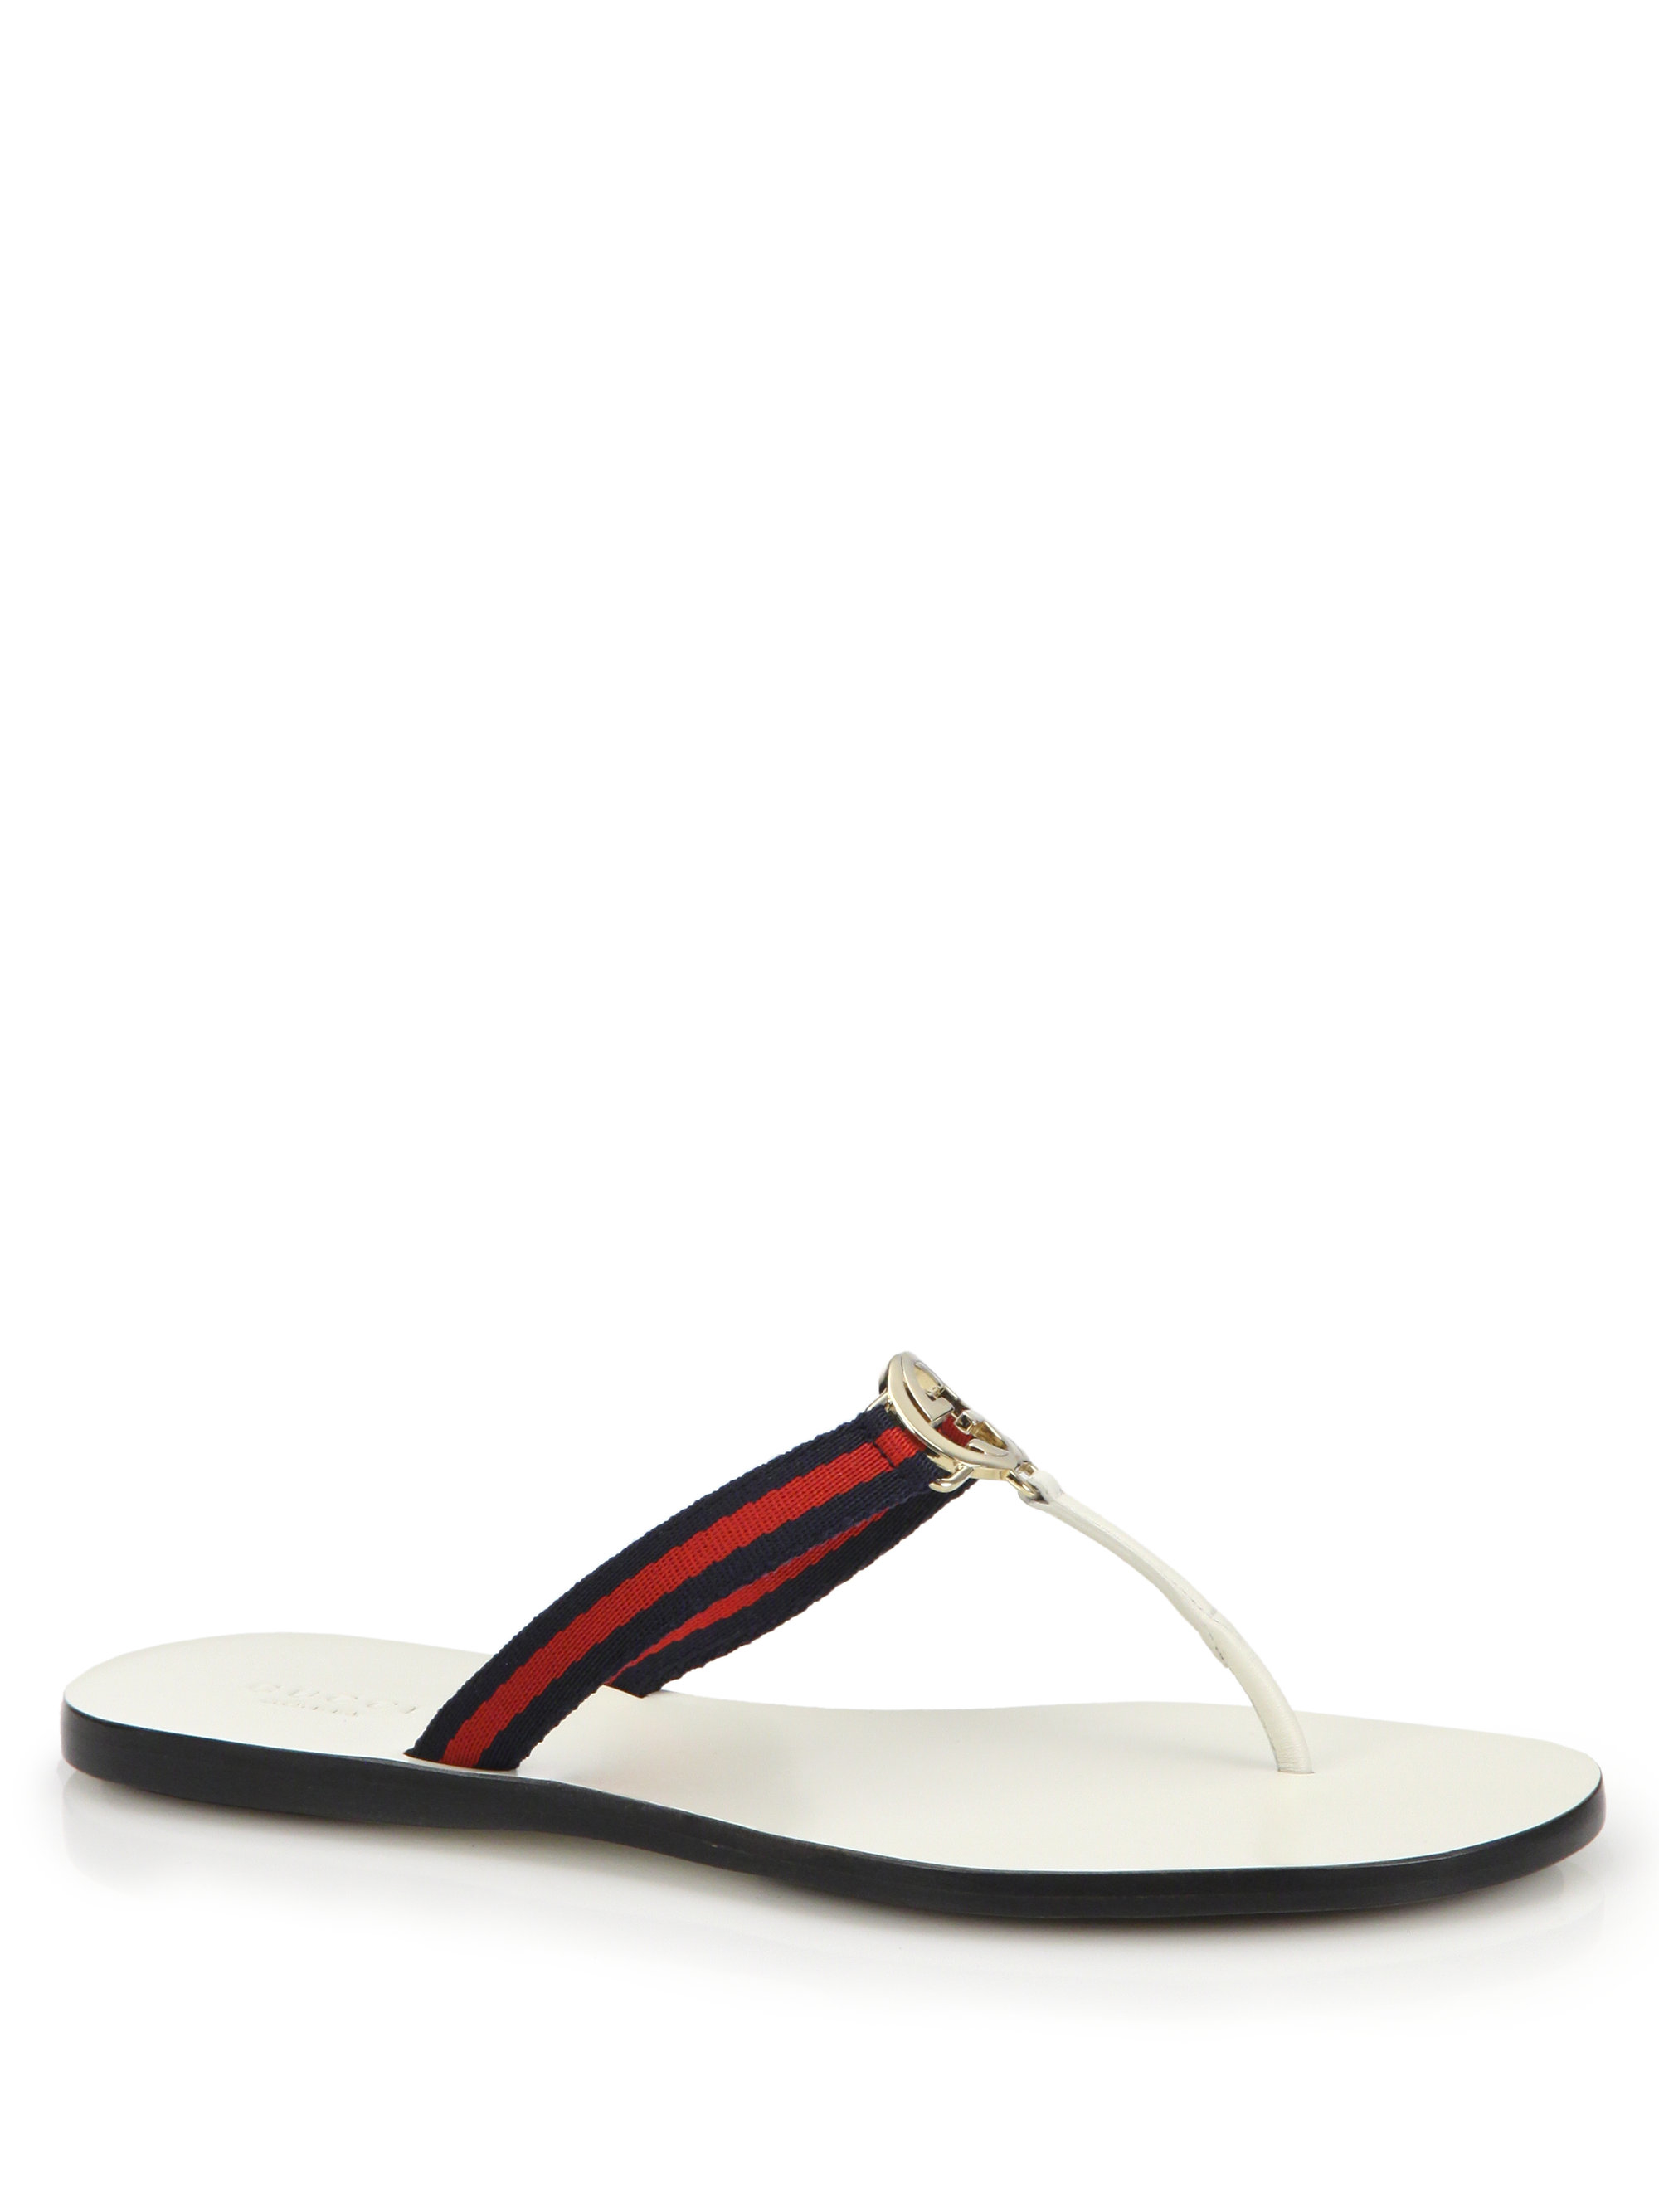 Lyst - Gucci New Gg Canvas   Leather Signature Thong Sandals in Blue 8a6d90162e17